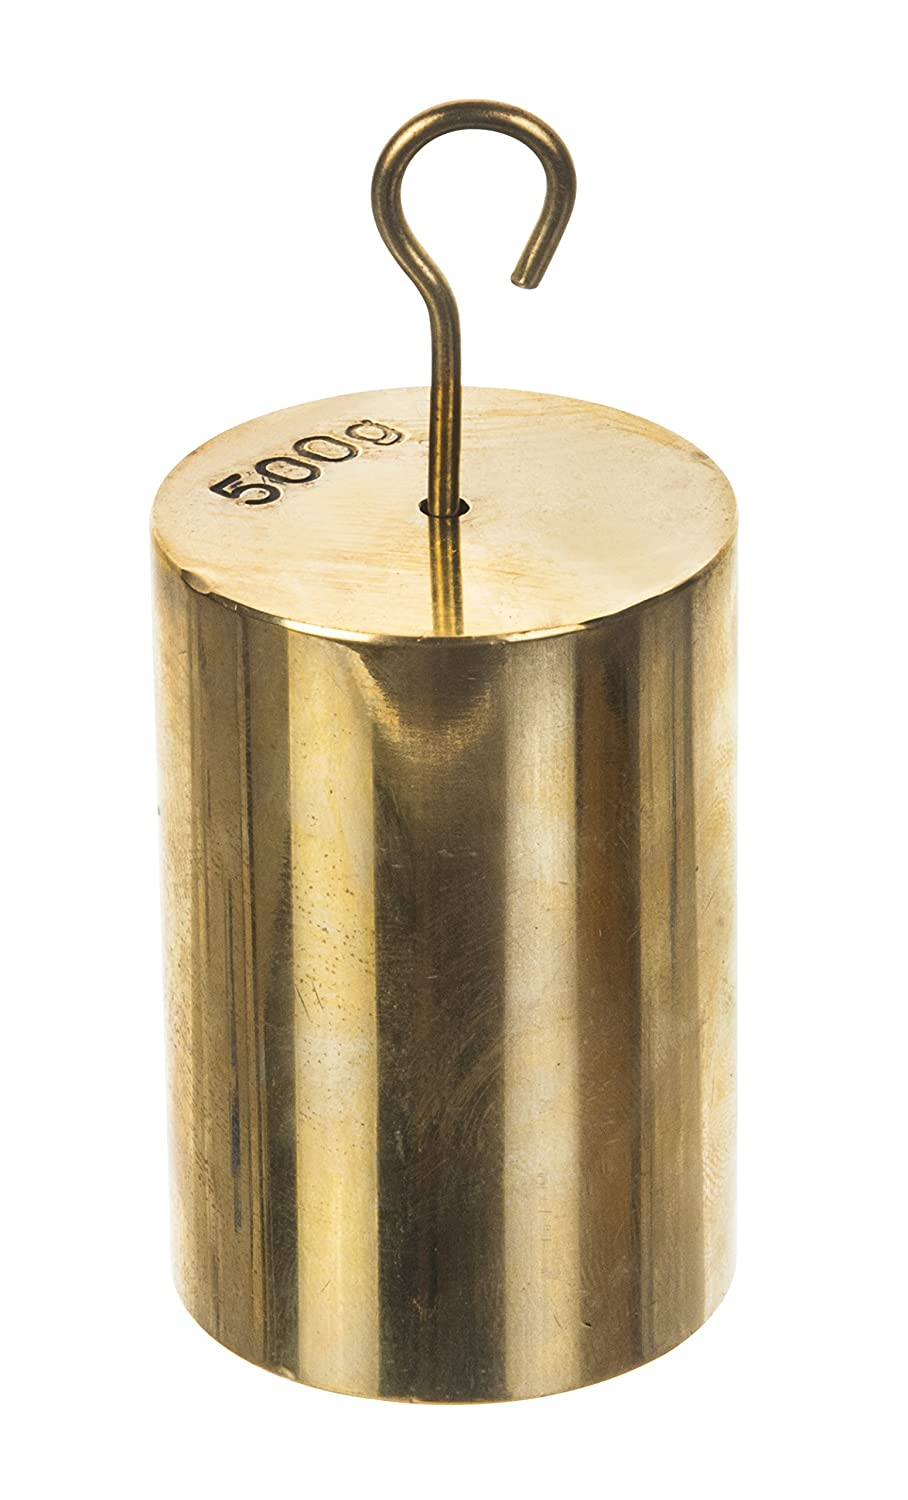 Double Hooked Weight Brass 500 Grams (1.10 Lbs.) Eisco Labs